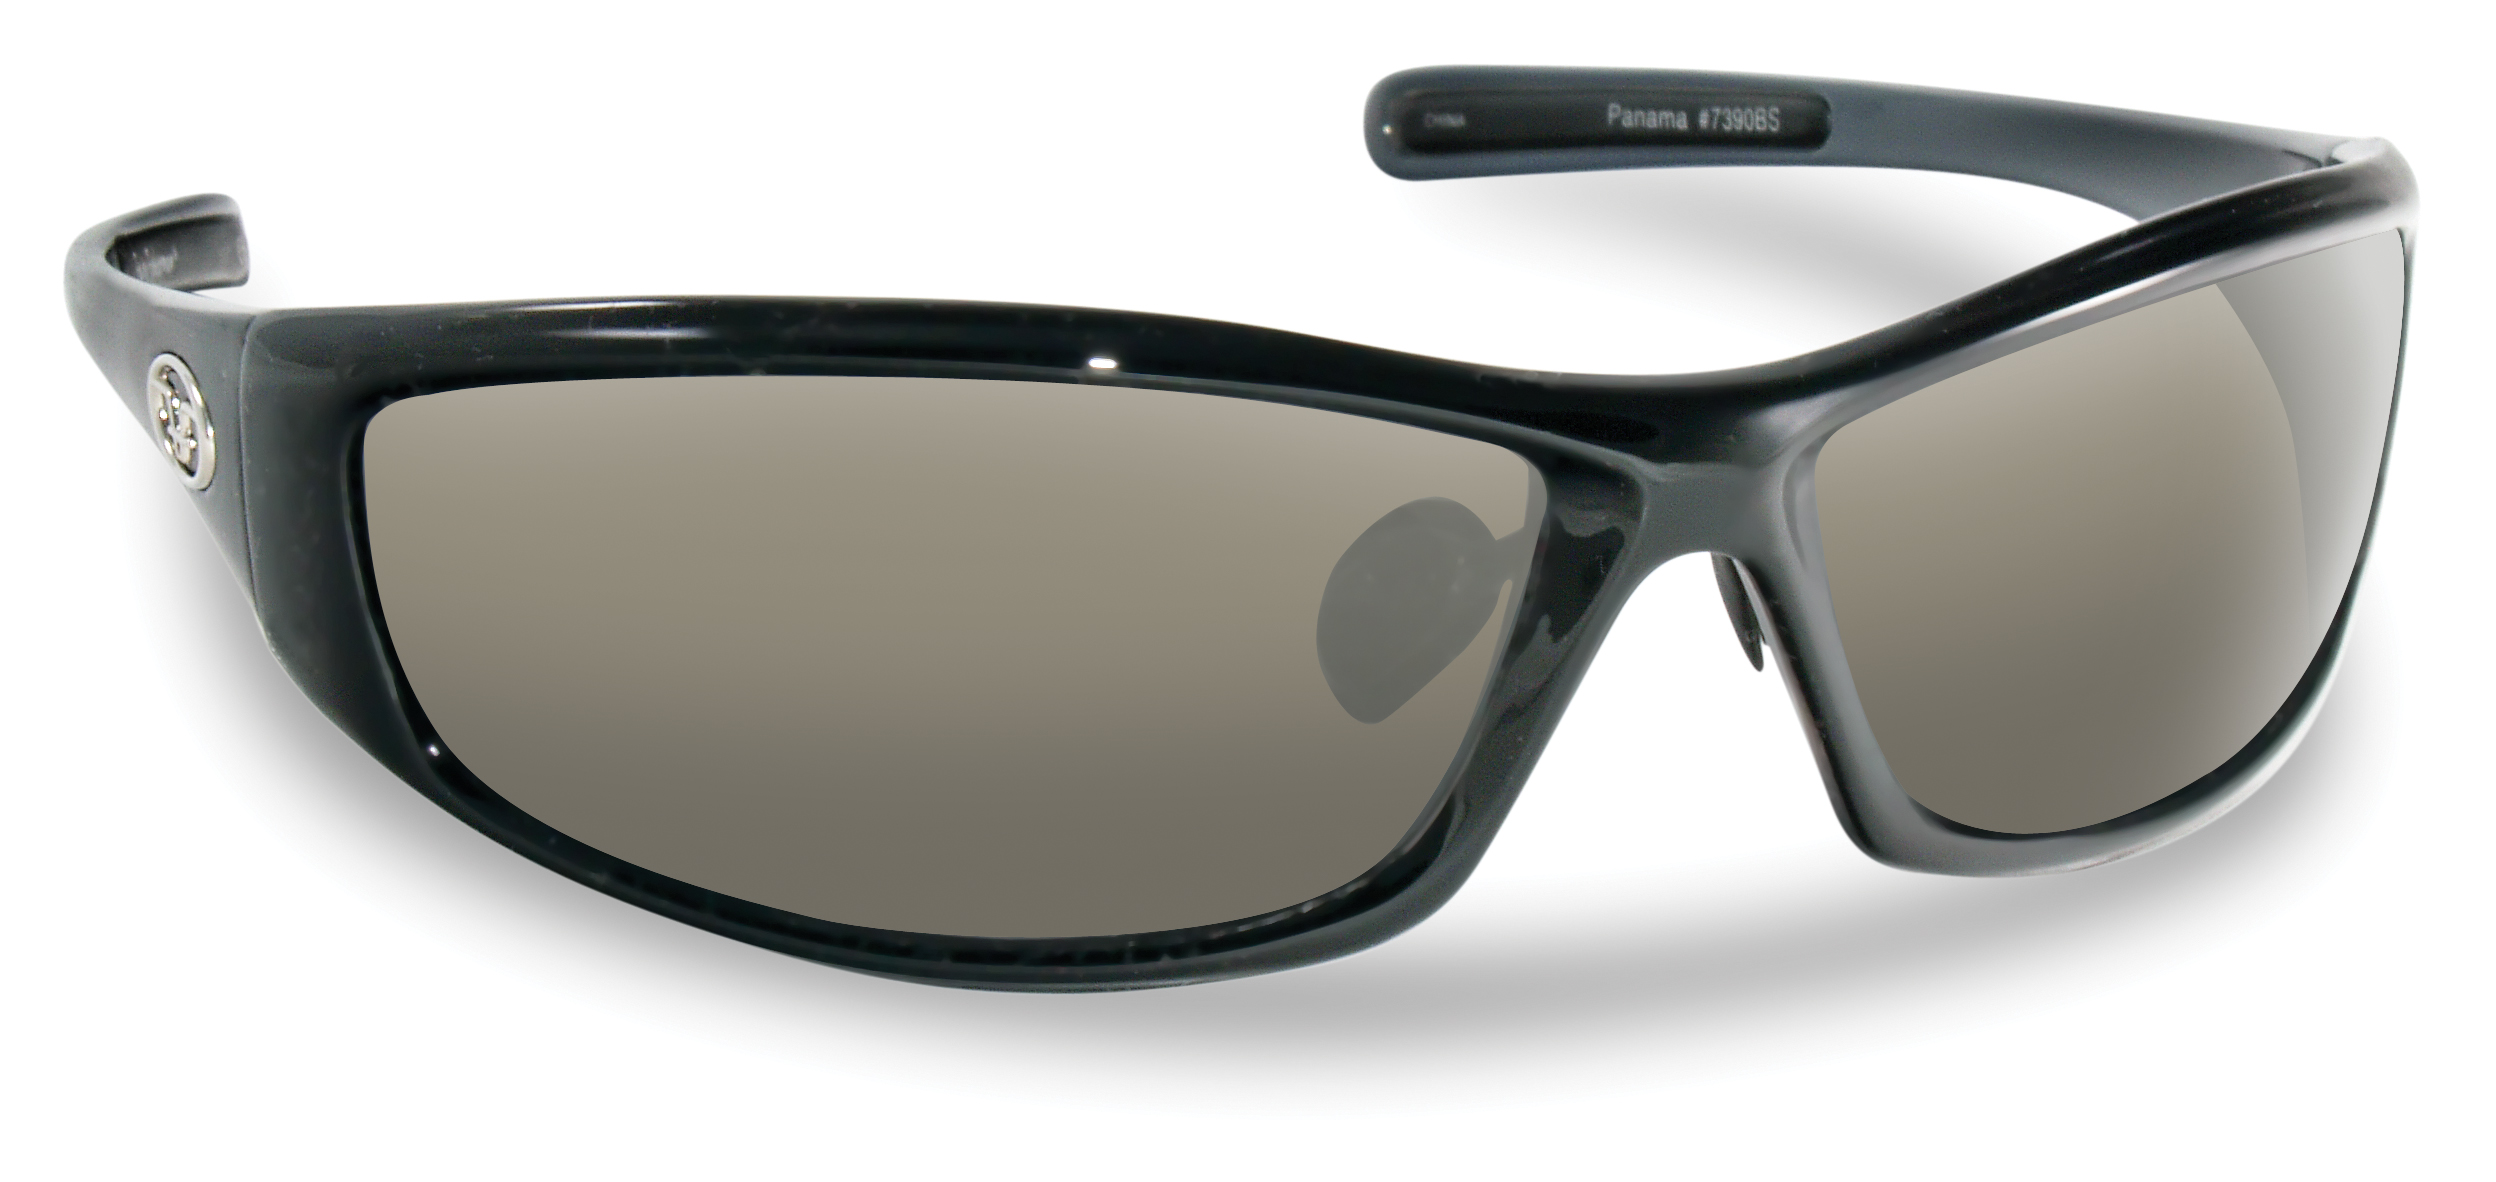 dab5ed3d4ad Flying Fisherman Panama Sunglasses – Glasgow Angling Centre